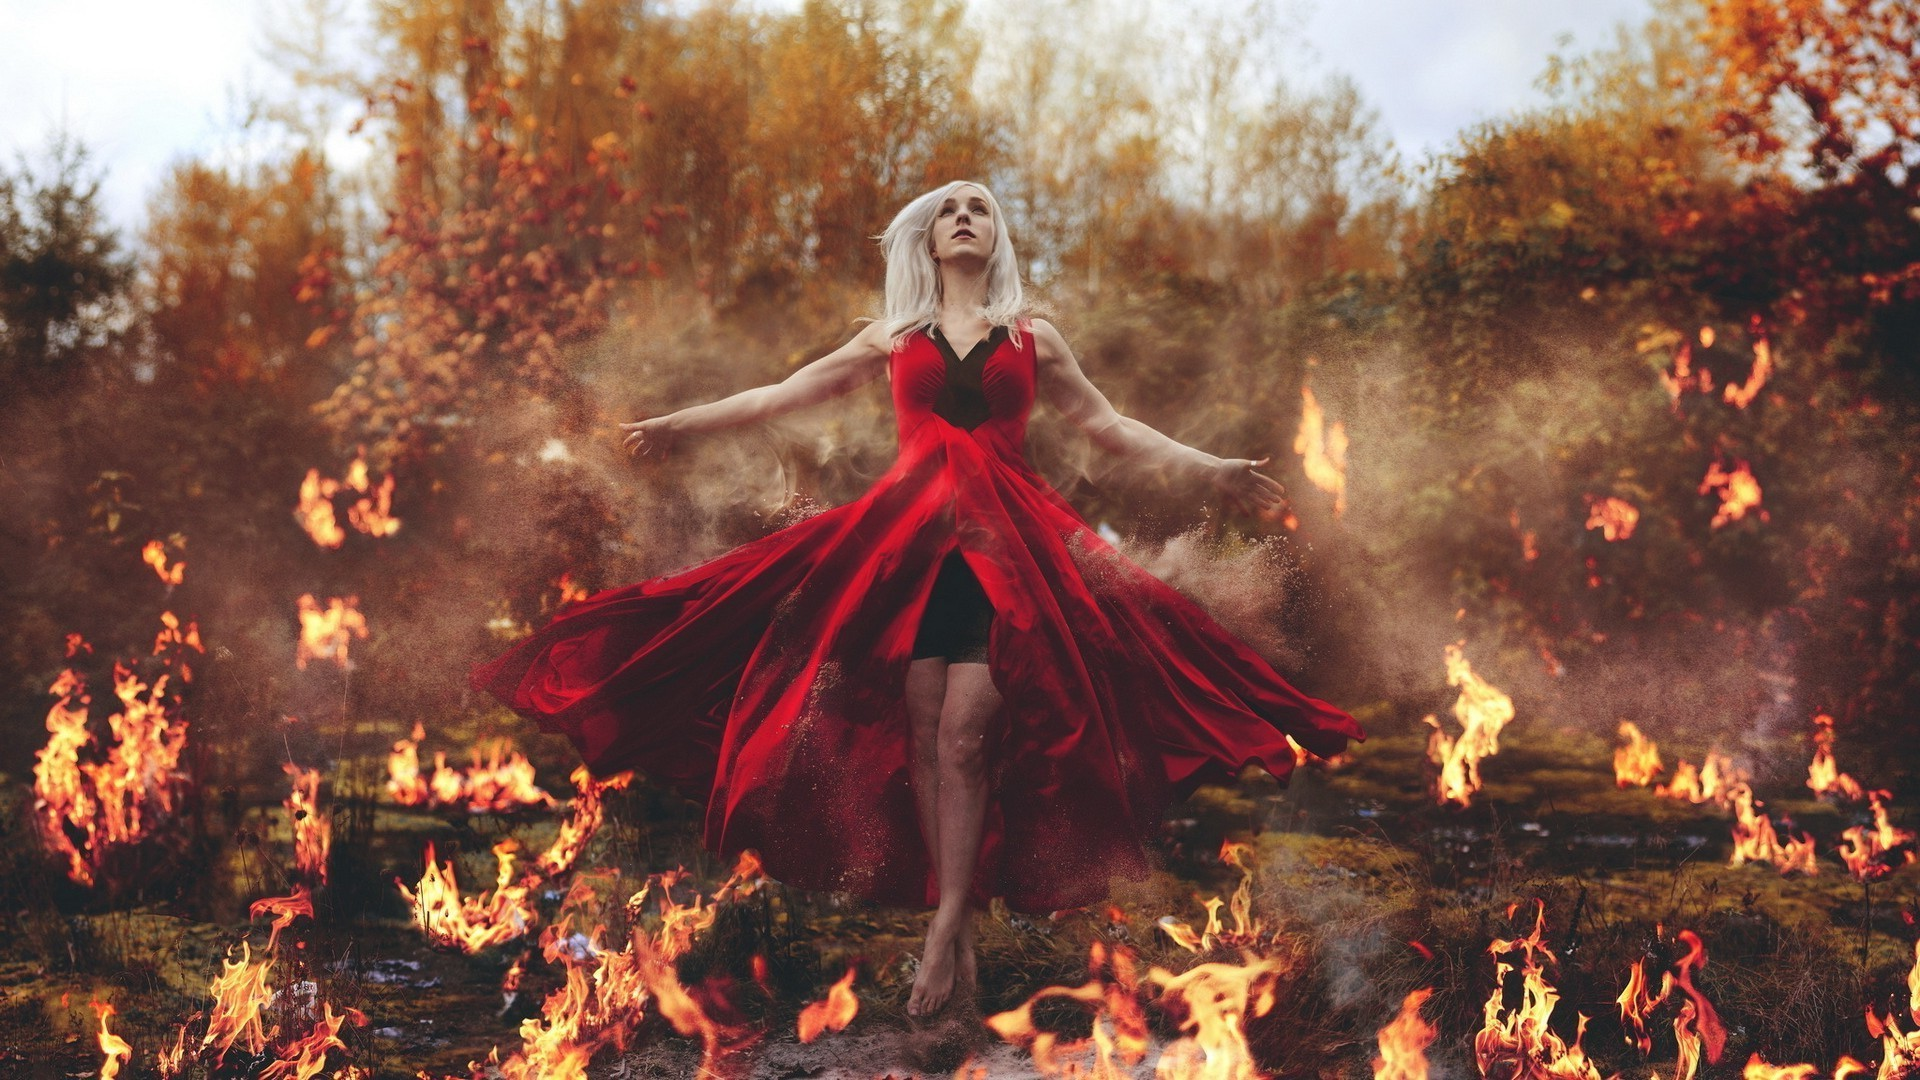 The girl in the red dress in the fire